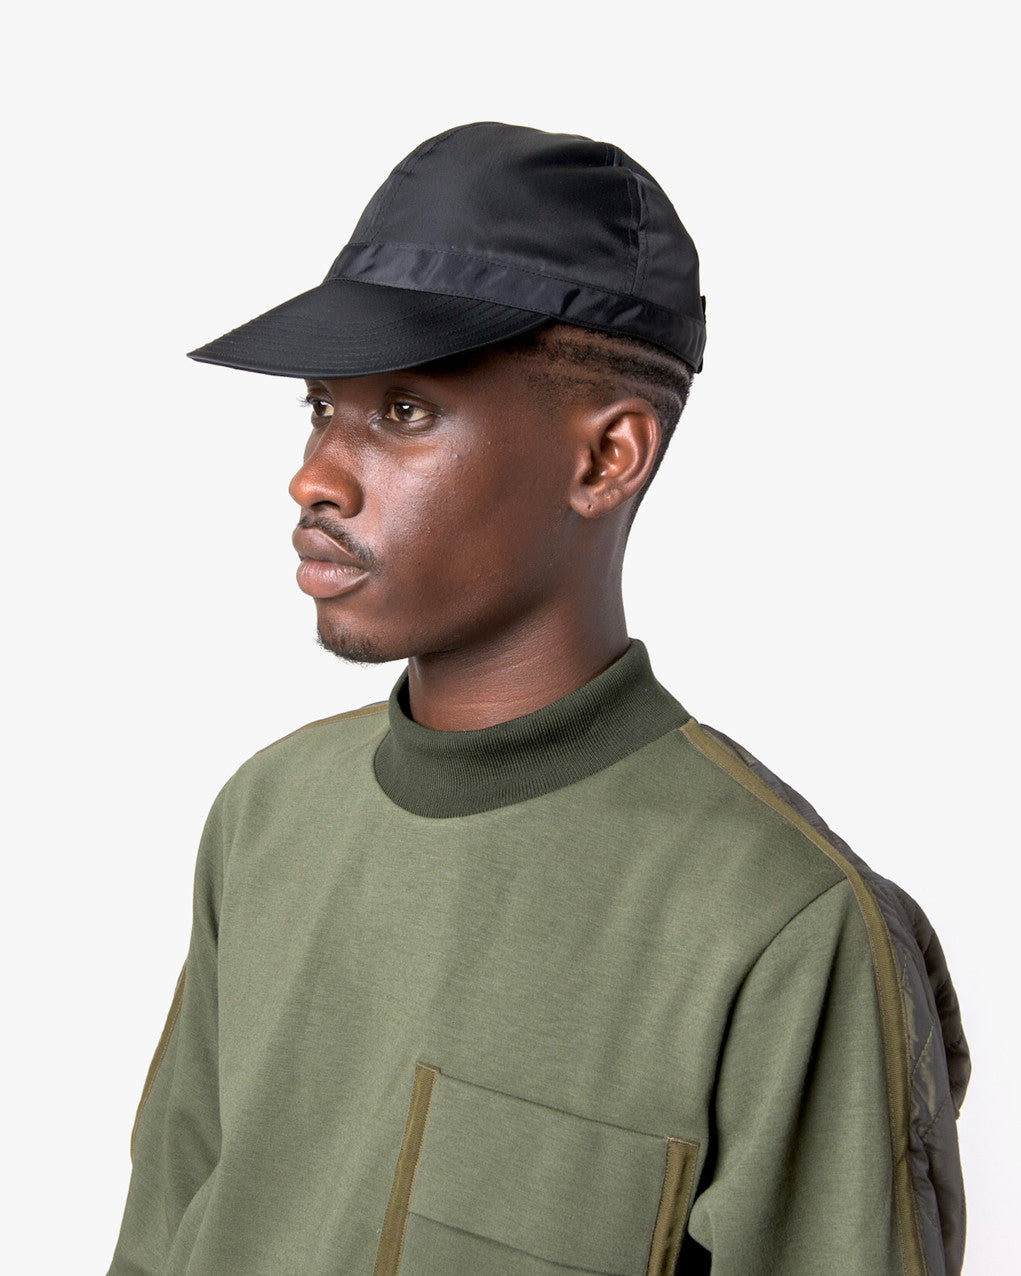 Nylon Scout Cap in Olive by SMOCK Man at Mohawk General Store - 5